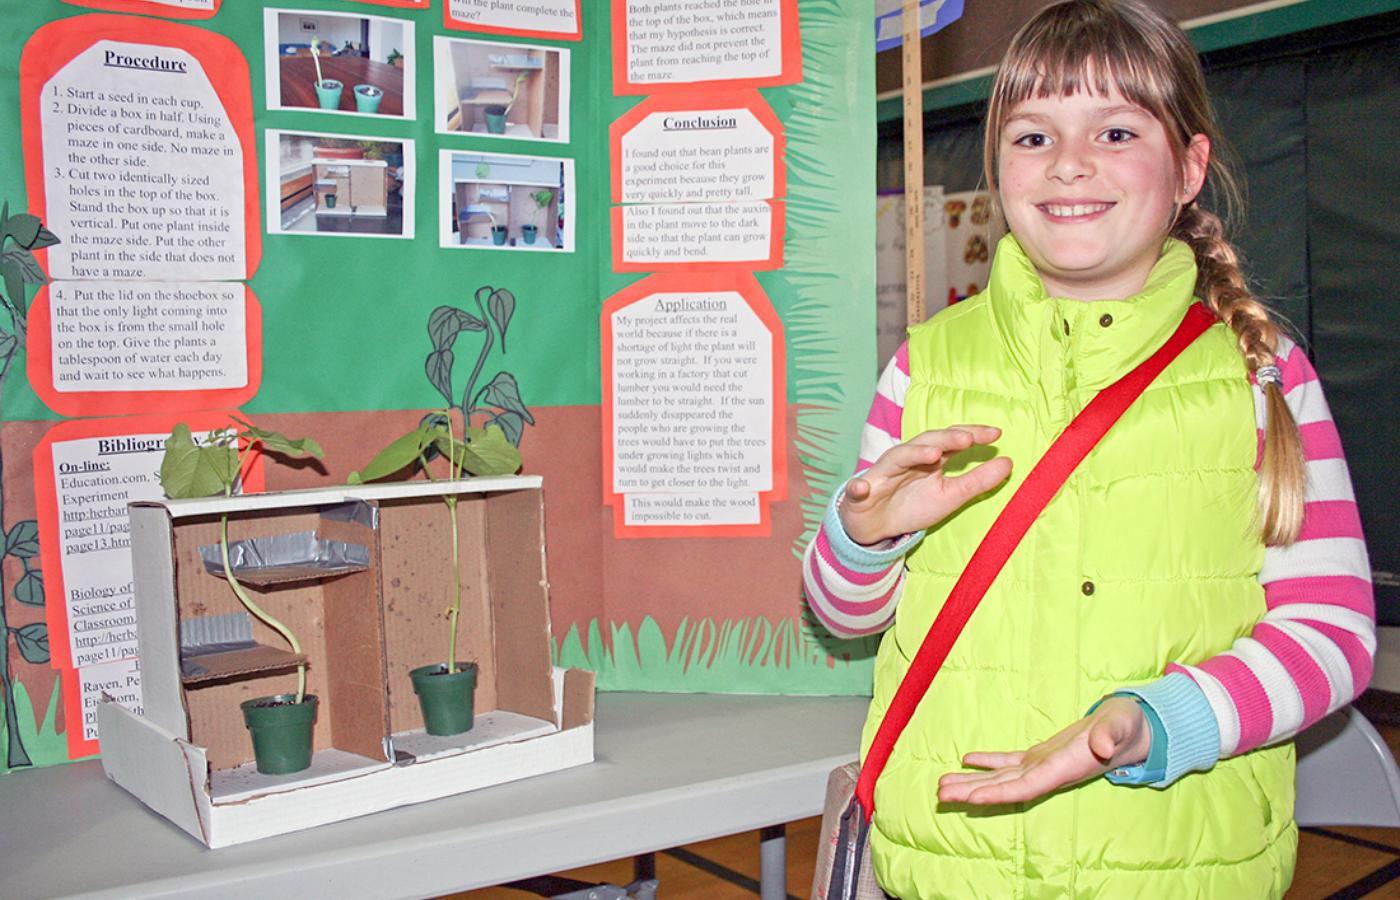 wp_1_science_fair_041714_1_facebook_og_image  Th Grade Science Projects Sports on baking soda rocket science projects, exhibition science projects, gifted and talented science projects, all the science projects, 6th grade reading projects, question and hypothesis science projects, teachers science projects, reading science projects, united states 5th grade projects, 4 grade projects, volcano science projects, magnetic simple projects, the hobbit science projects, college science projects, 5th grade ela projects, band science projects, k5 science projects, pinterest preschool science projects,